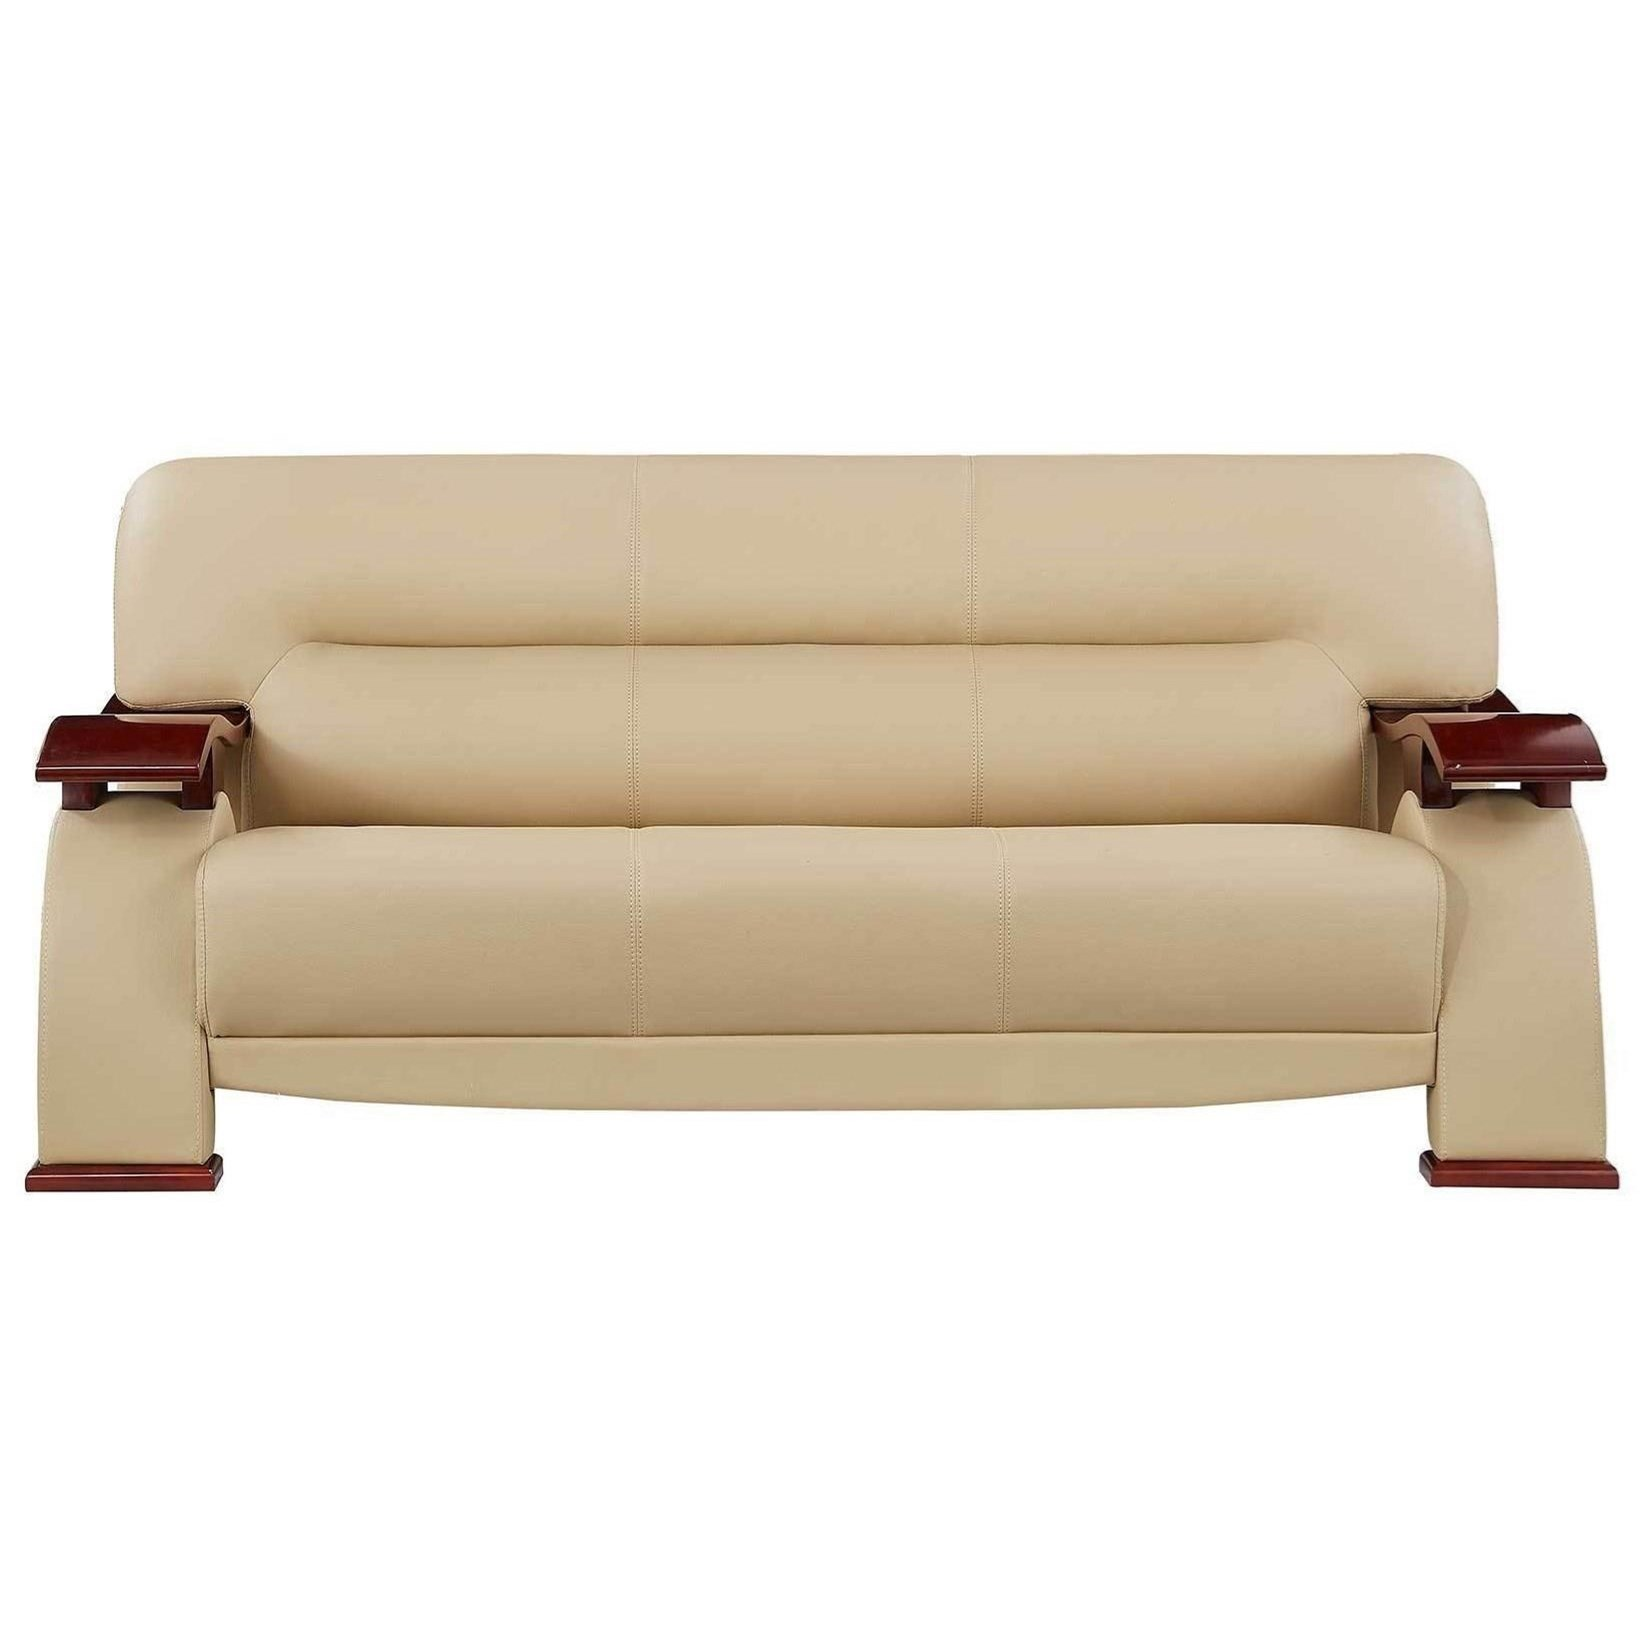 U2033 Sofa With Wood Arms By Global Furniture At Rooms For Less